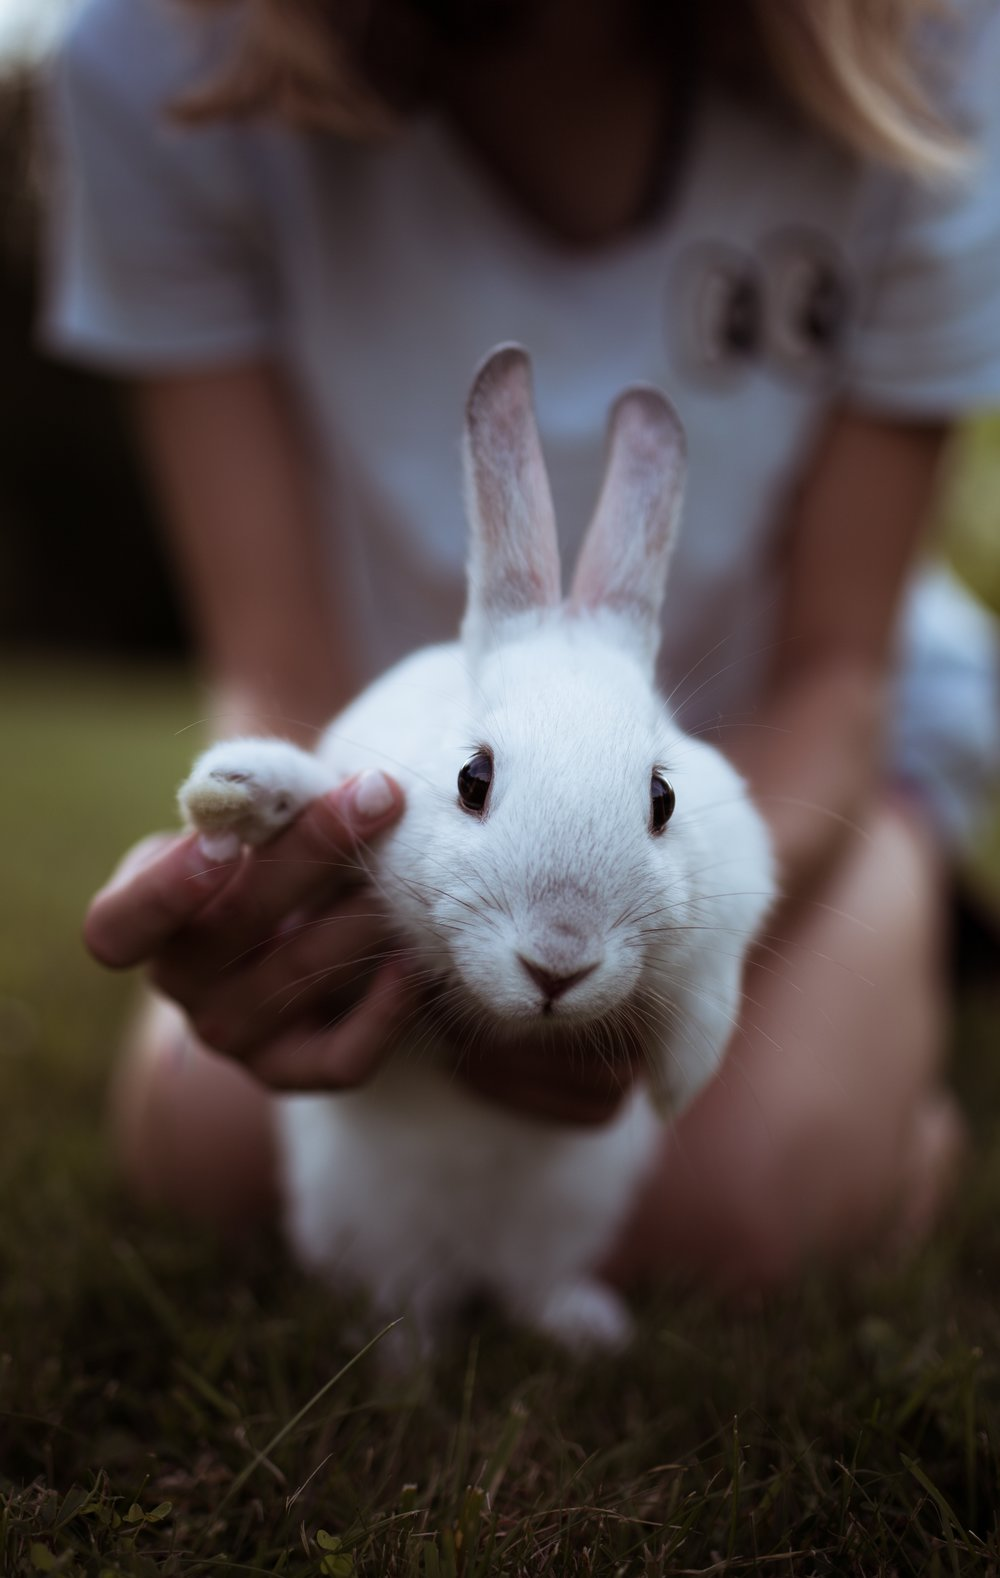 A bit like this rabbit, we're happy to welcome you to this page :)